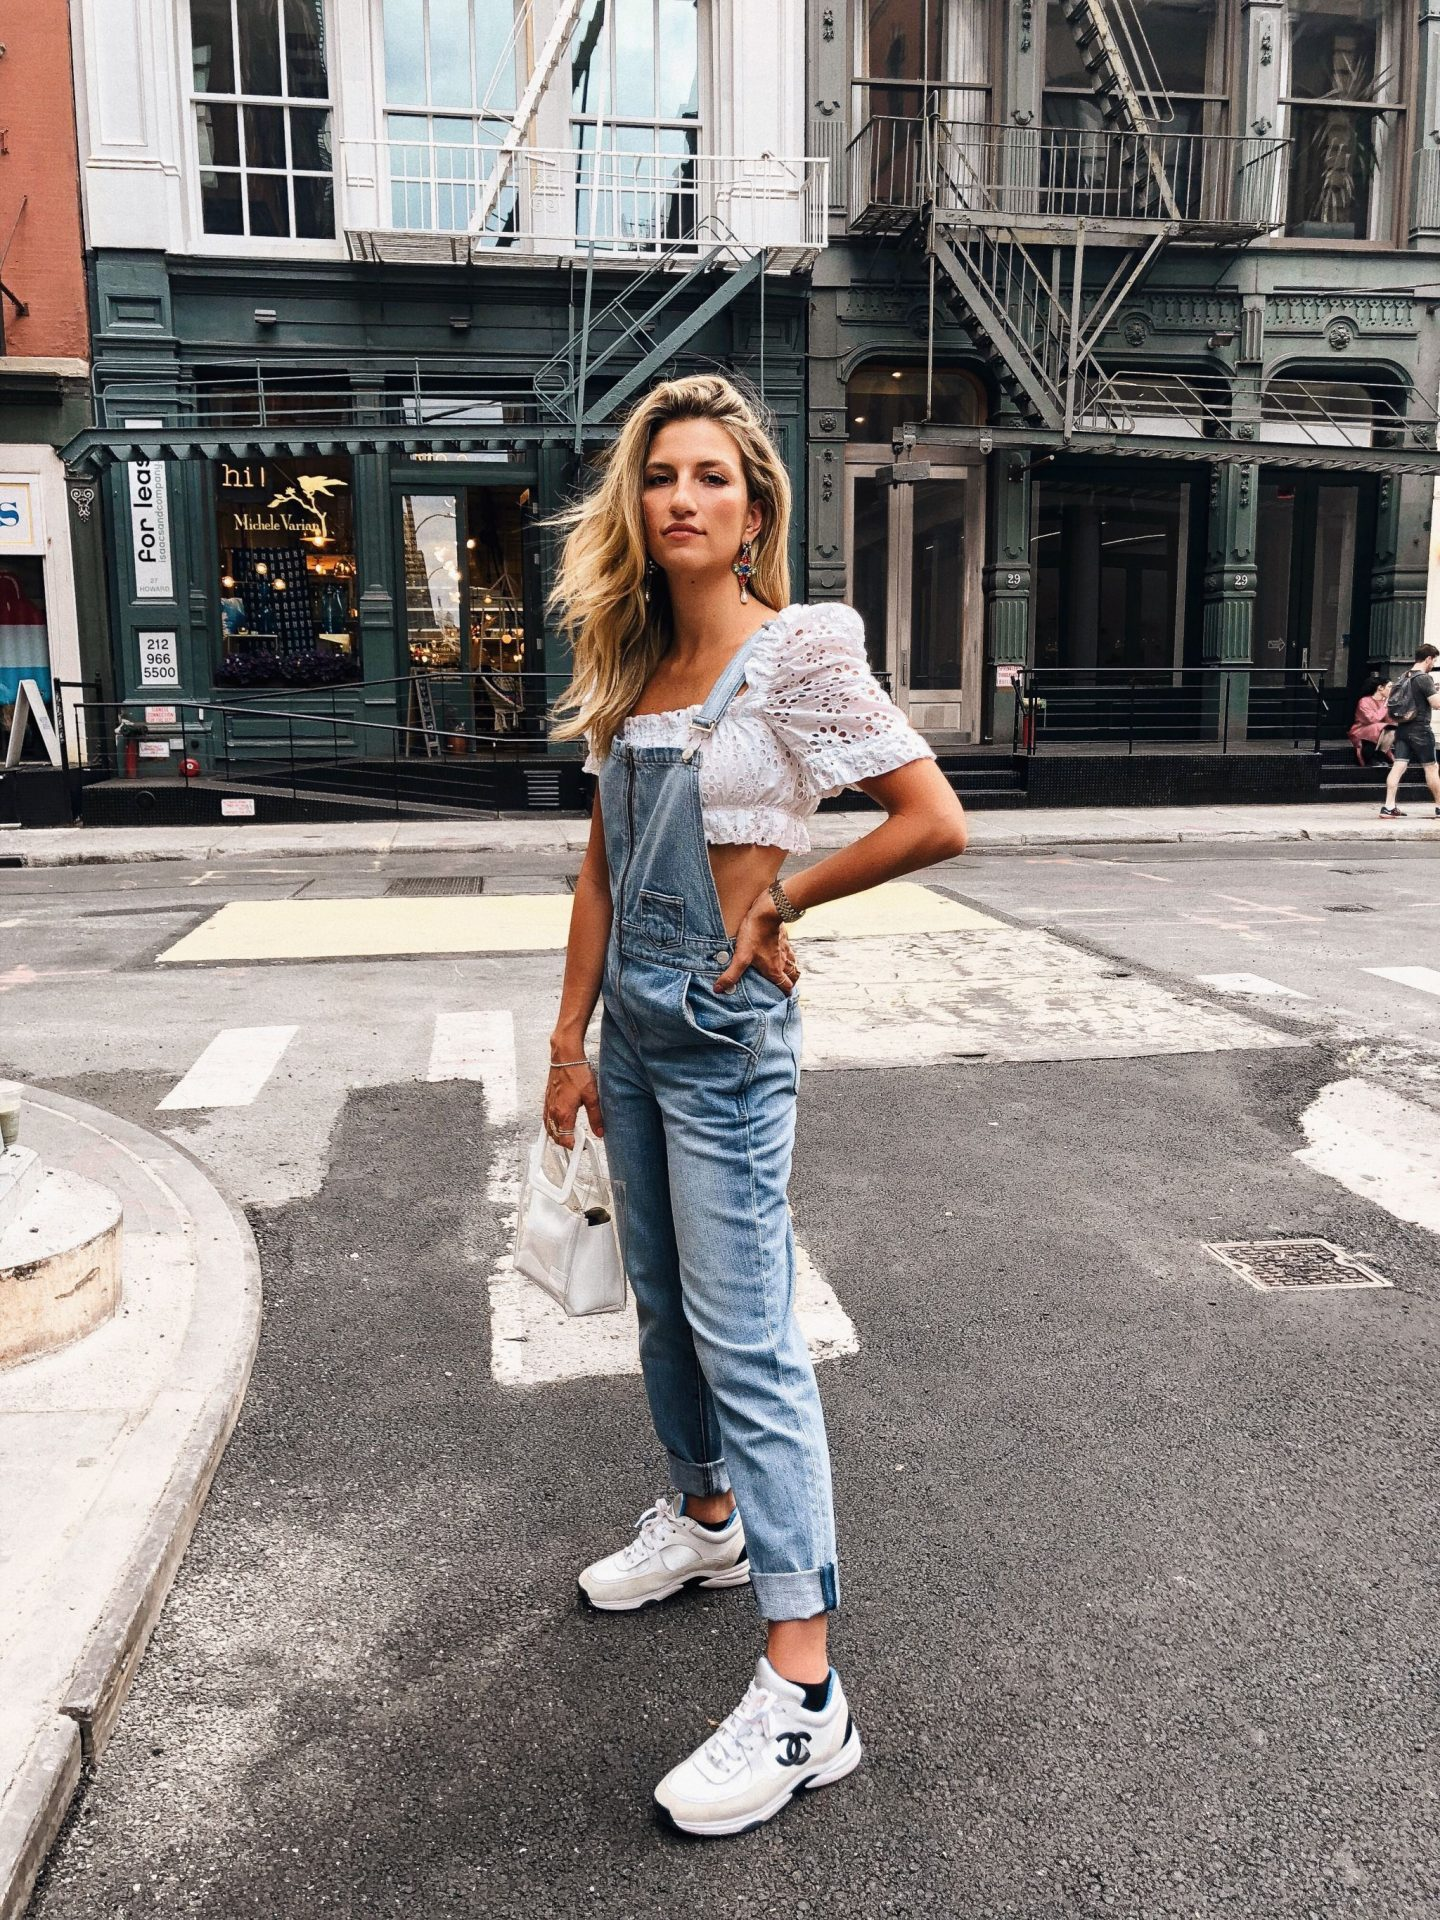 Cassandra DiMicco, Cass DiMicco, Dressed For Dreams, NYC, New York City, New York, Street Style NYC, Street Style 2018, NYC Street Style Street Style Outfits, 2018 Trends, NYC Fashion Blogger, NYC to do list, NYC to do, NYC bucket list, NYC Instagram Spots, SoHo, Lovers + Friends, Overalls, Staud Purse, Revolve Clothing, Revolve Around The World, Chanel Sneakers, LPA crop top, Summer style, 2018 trends, summer outfit Inso